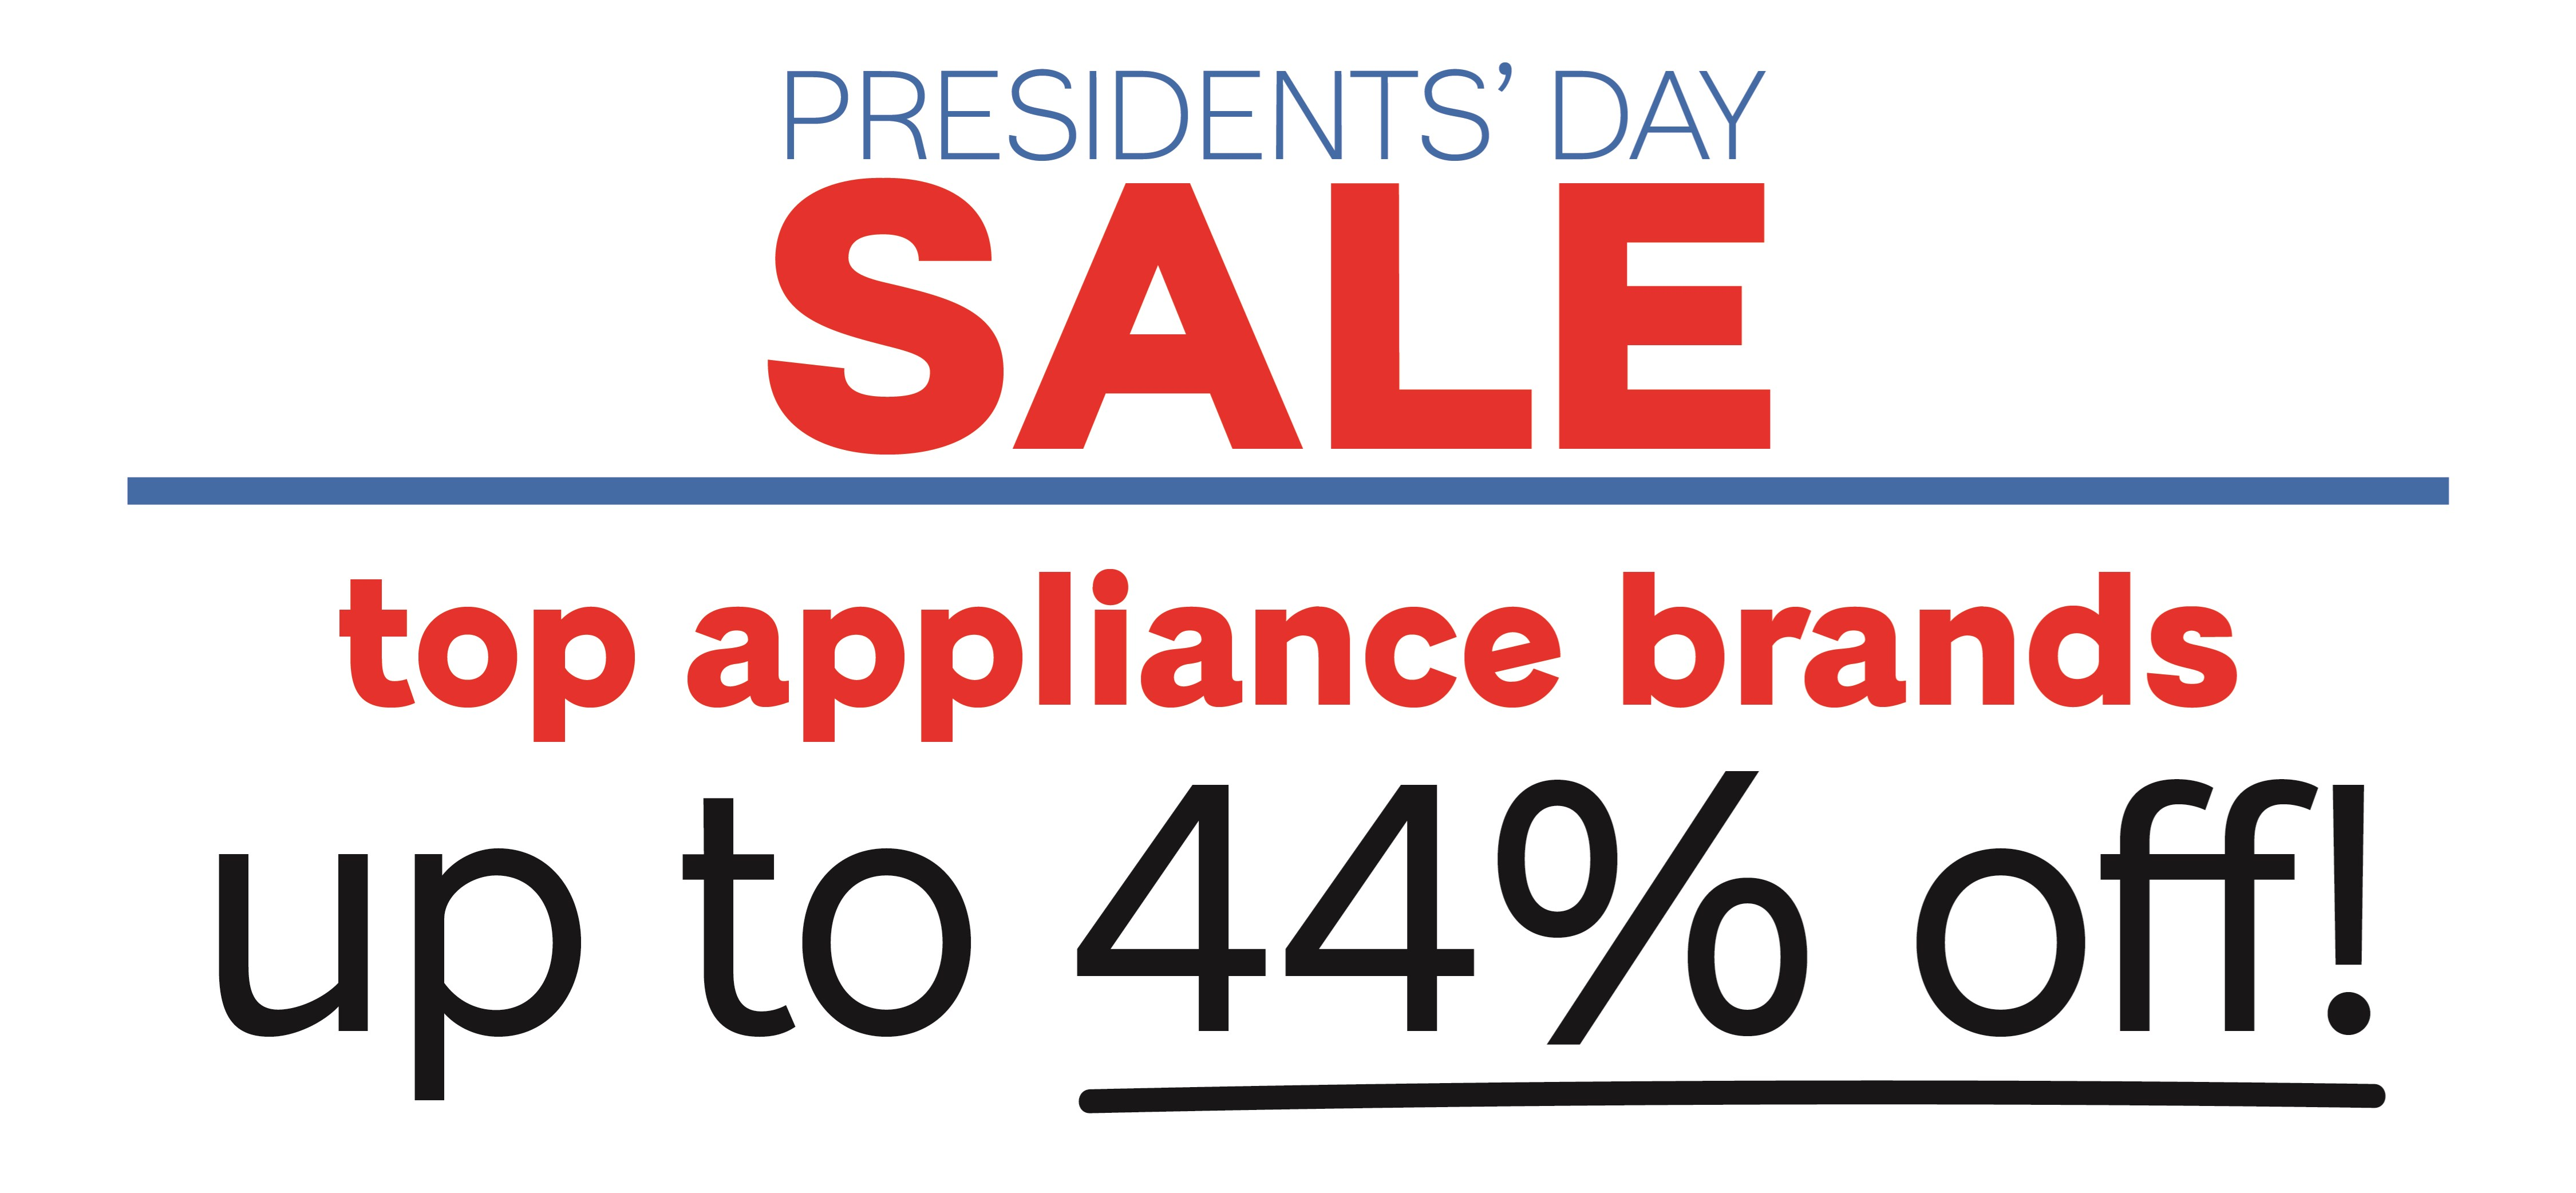 Presidents' Day Appliance Browse Page